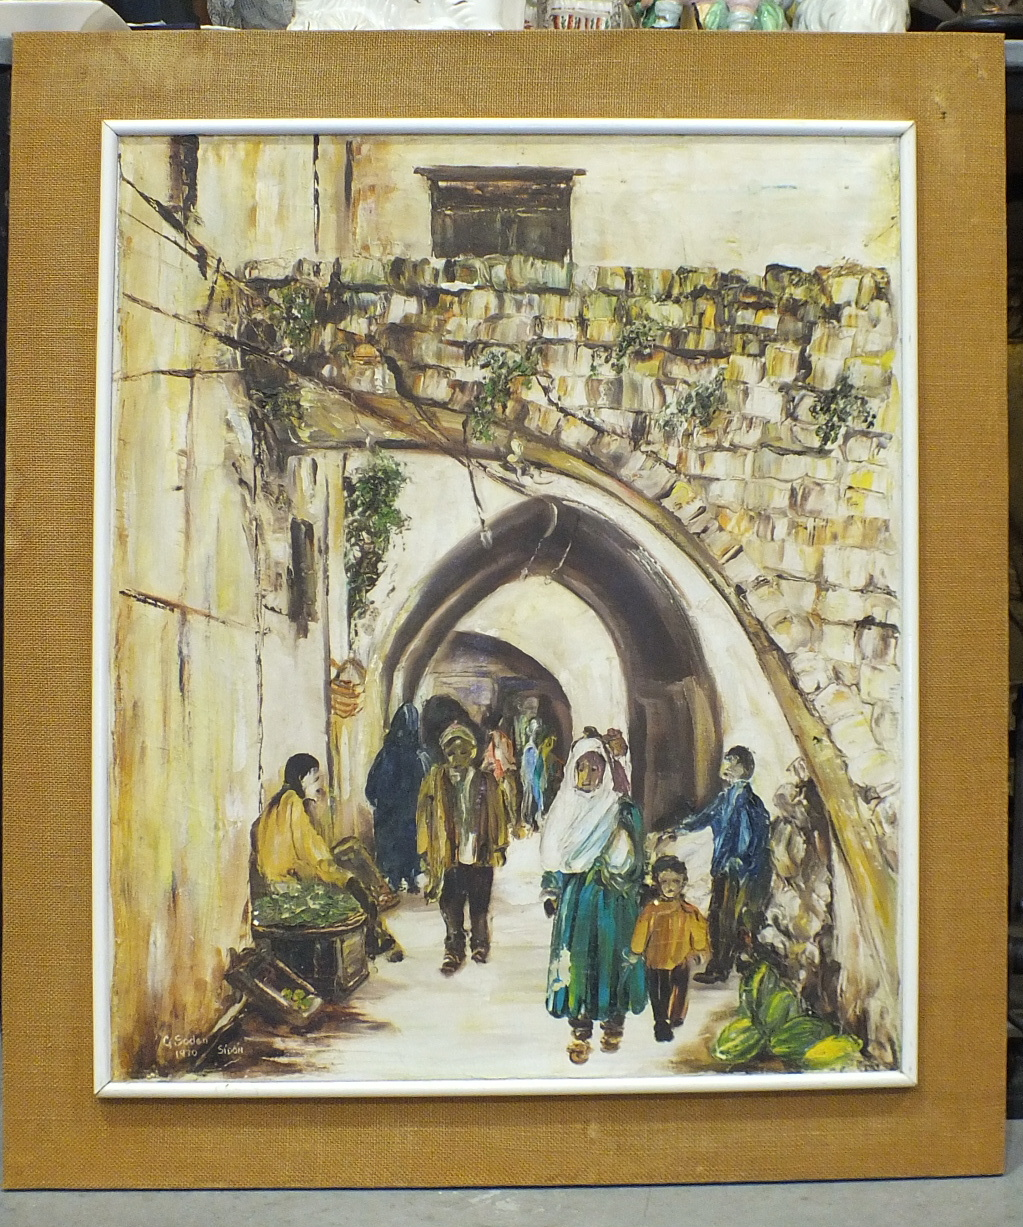 Lot 59 - G Soden, 'Sidon (Lebanon), Busy street scene', signed oil on canvas, dated '70, 52 x 67cm and